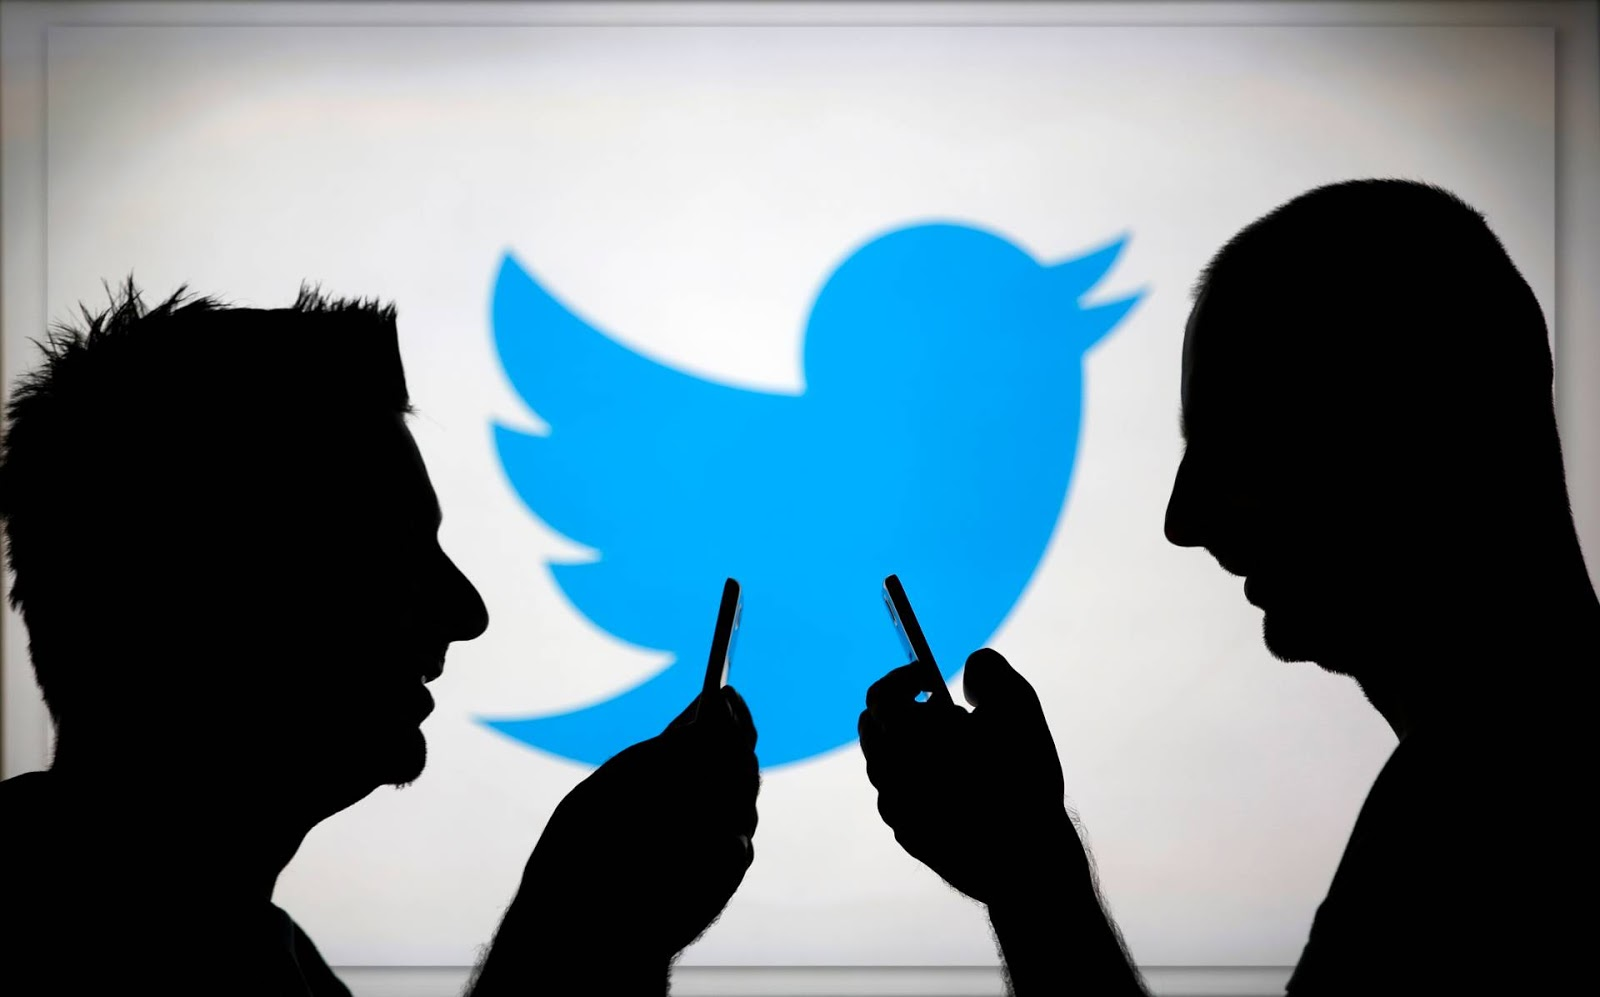 Twitter has announced the feature that users have long been waiting for